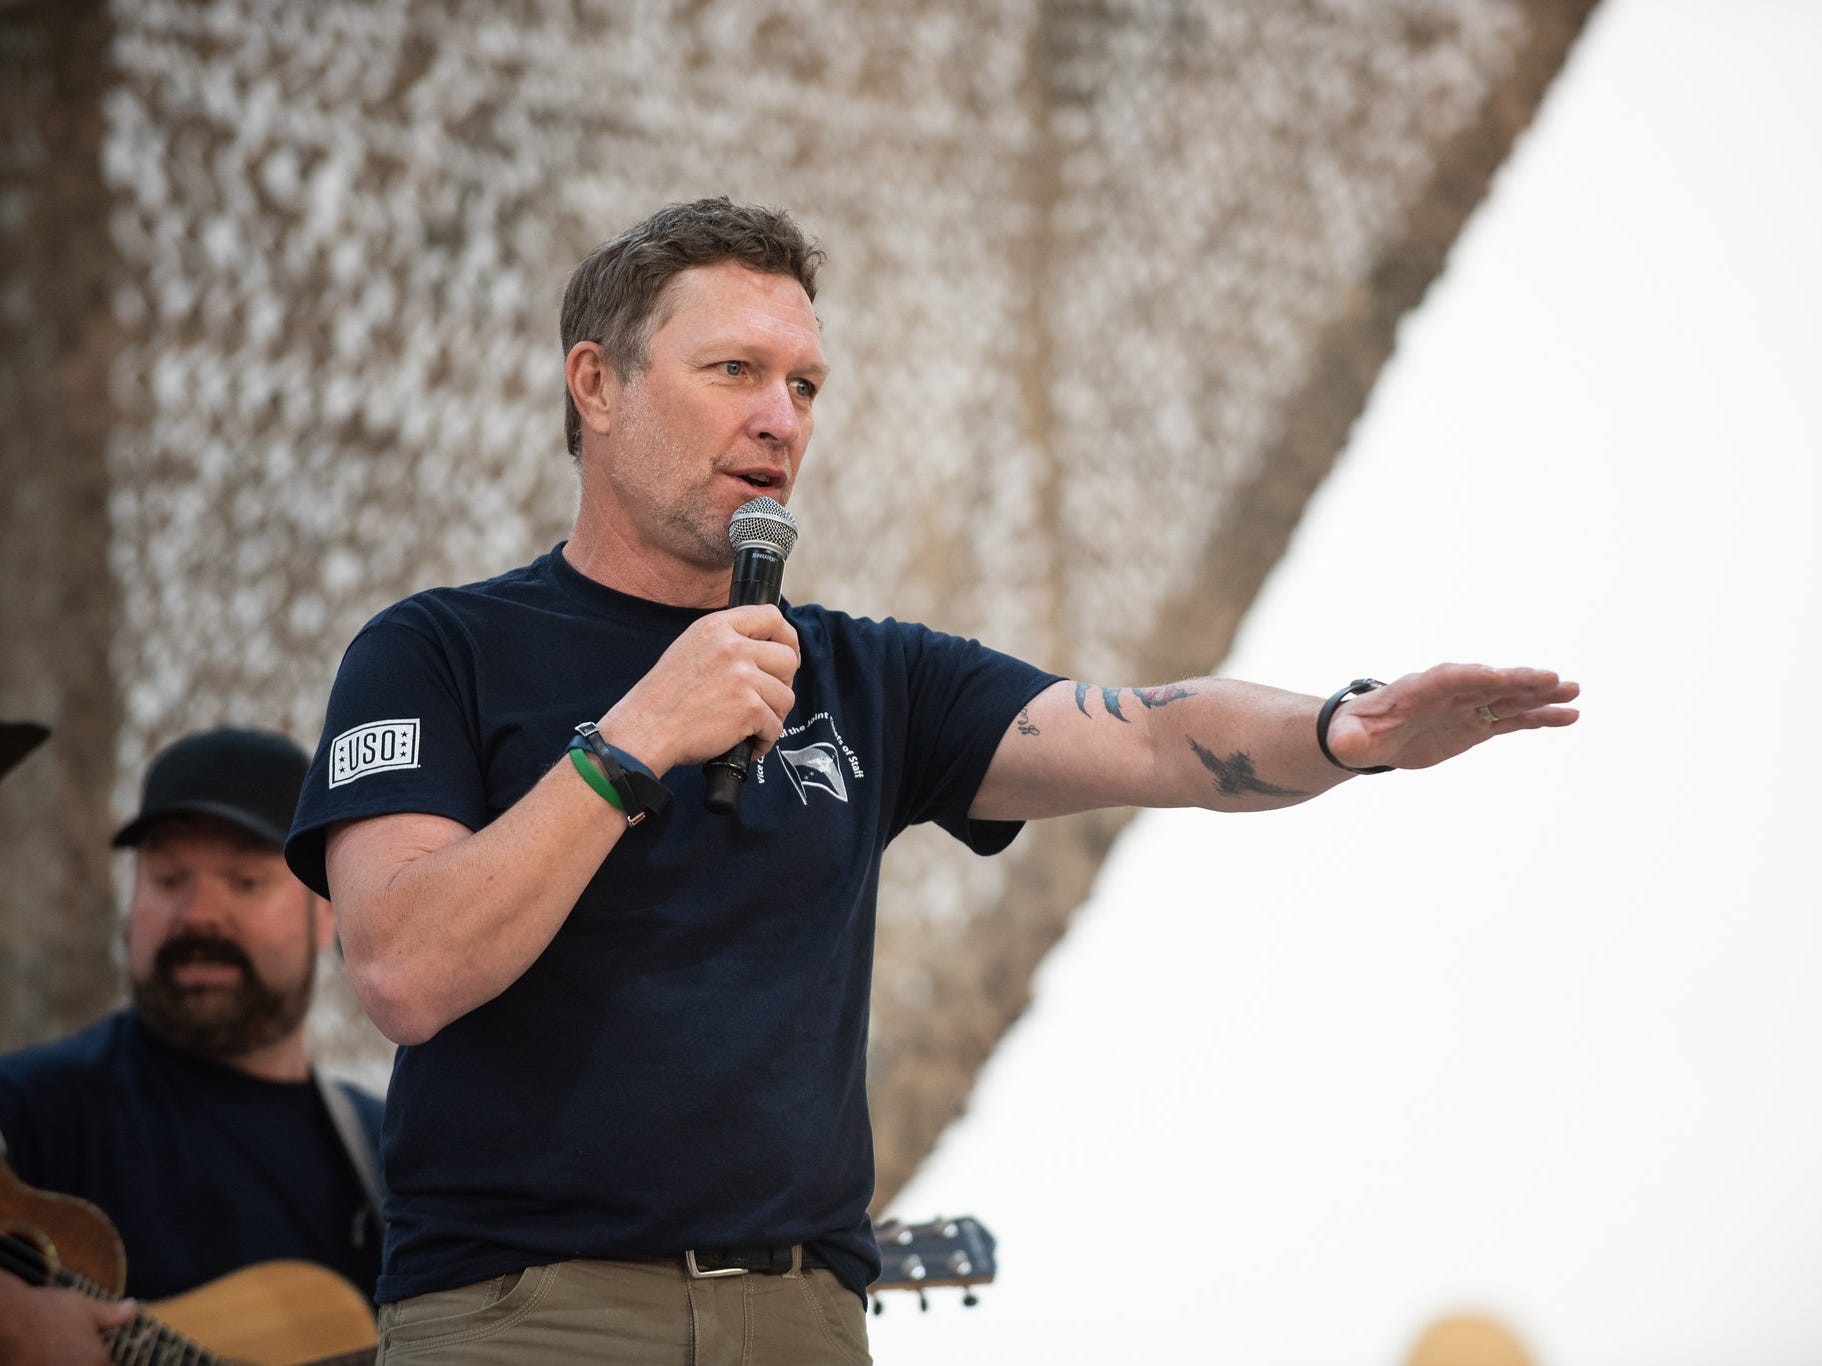 Craig Morgan interact with the audience during a USO Show at Al Asad Airbase, Iraq on April 2.